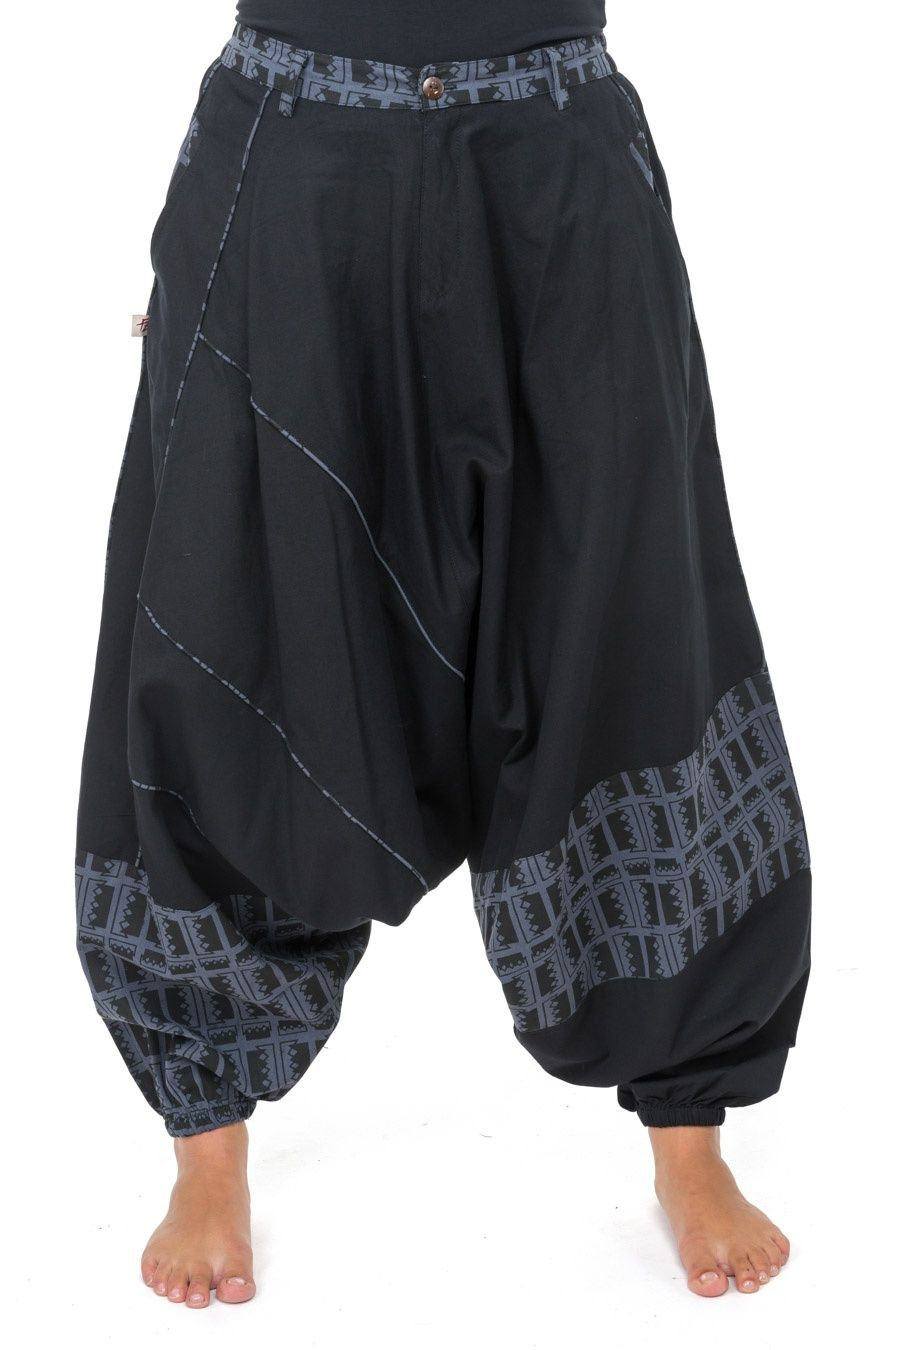 Harem Pants Men Women Urban Boho Black Grey Blue Naheda